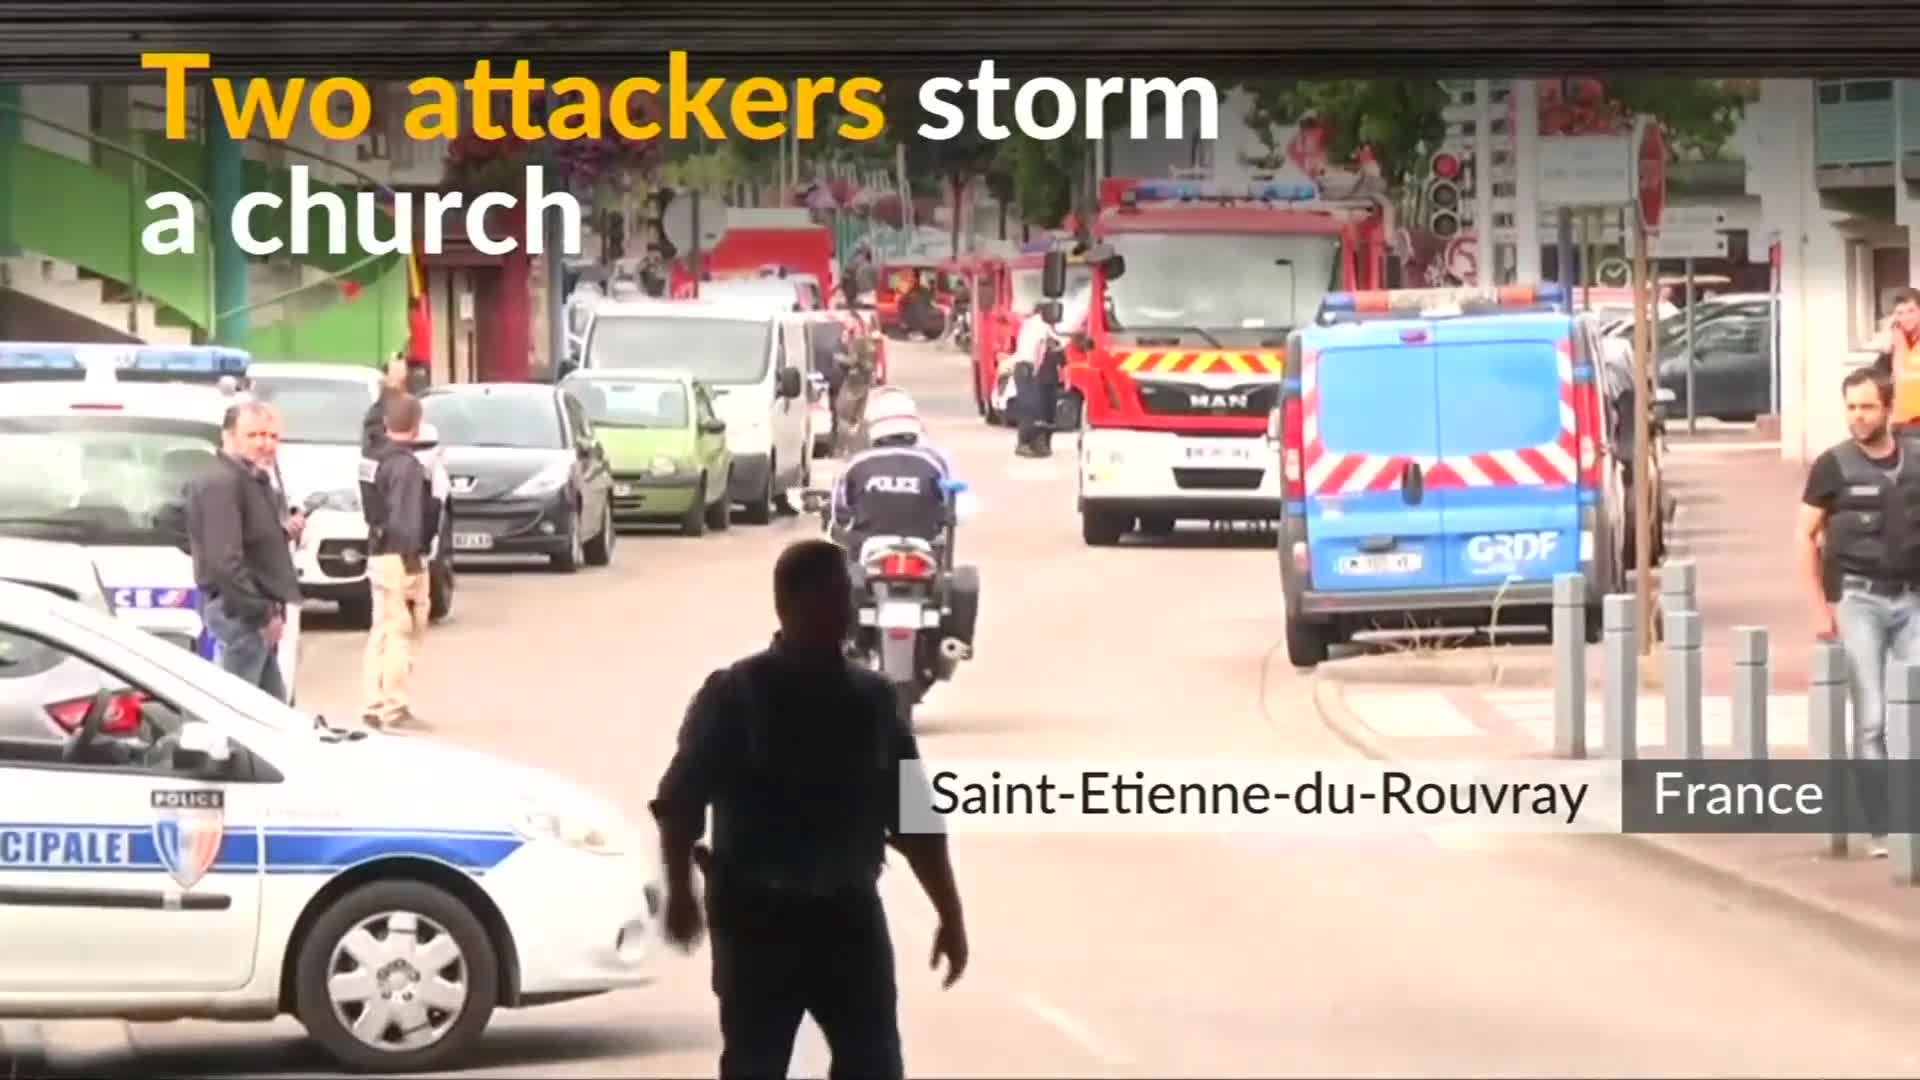 Two attackers kill priest in French church